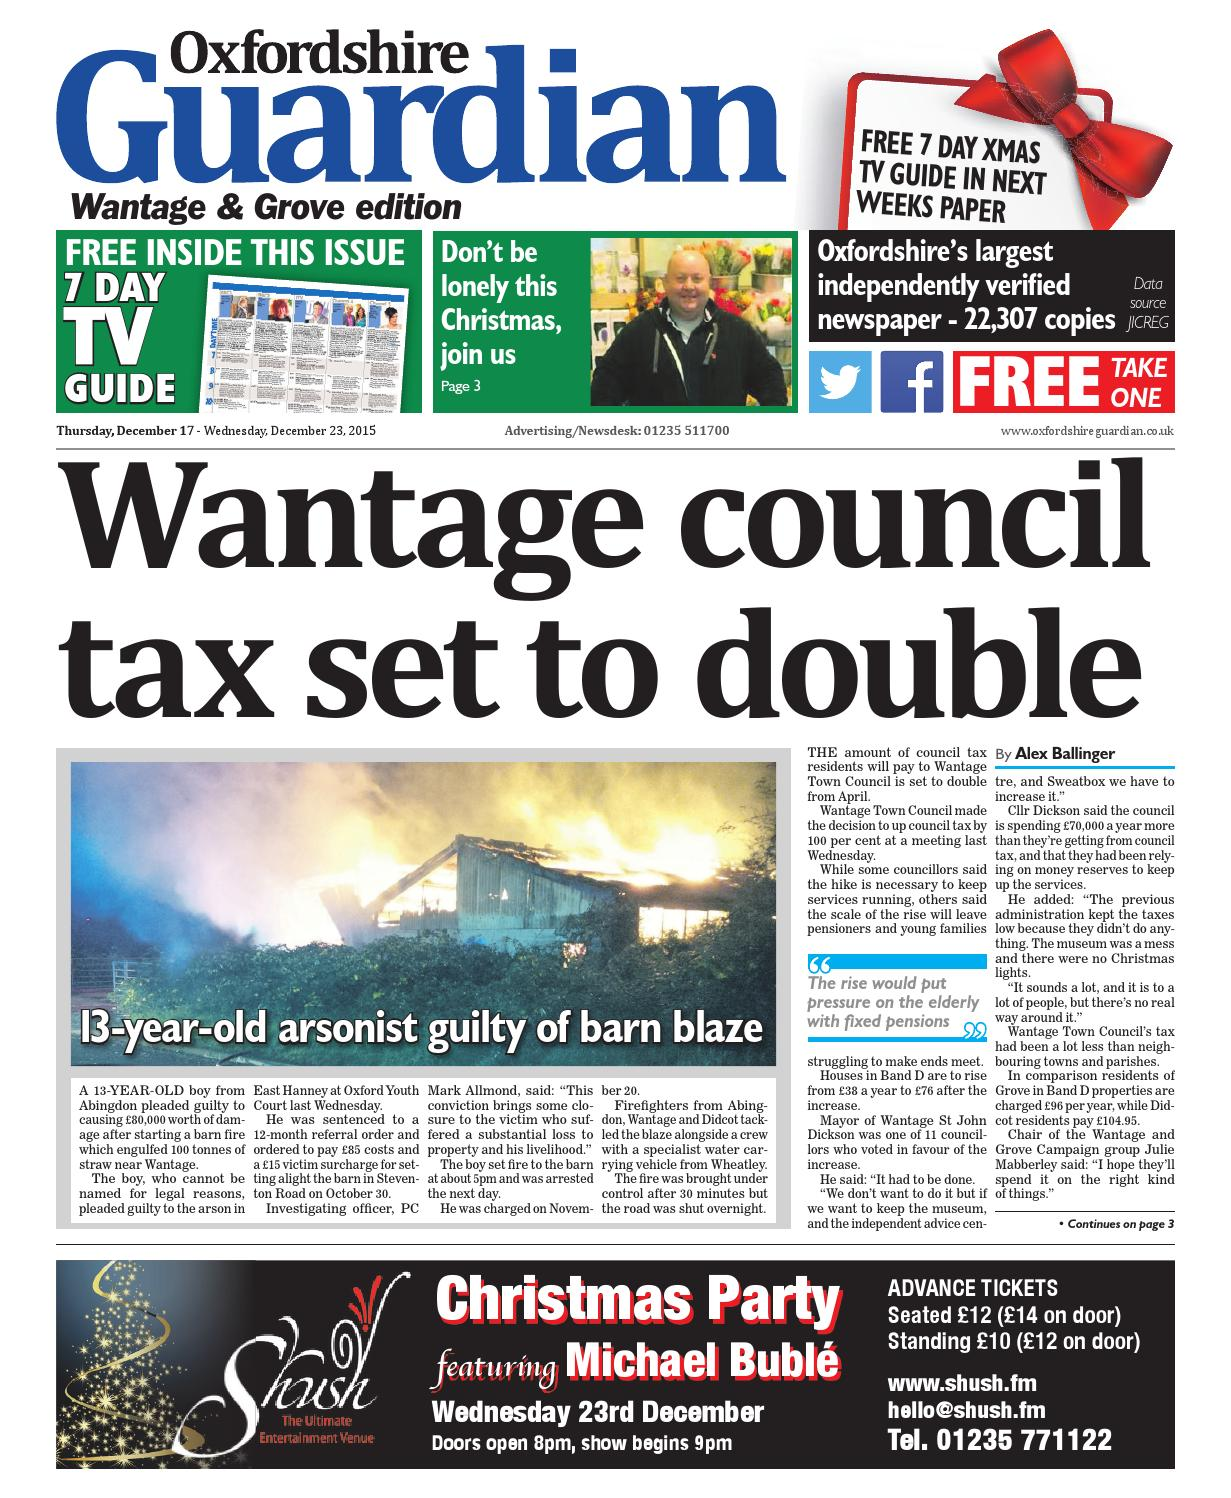 17 December 2015 Oxfordshire Guardian Wantage By Taylor Newspapers